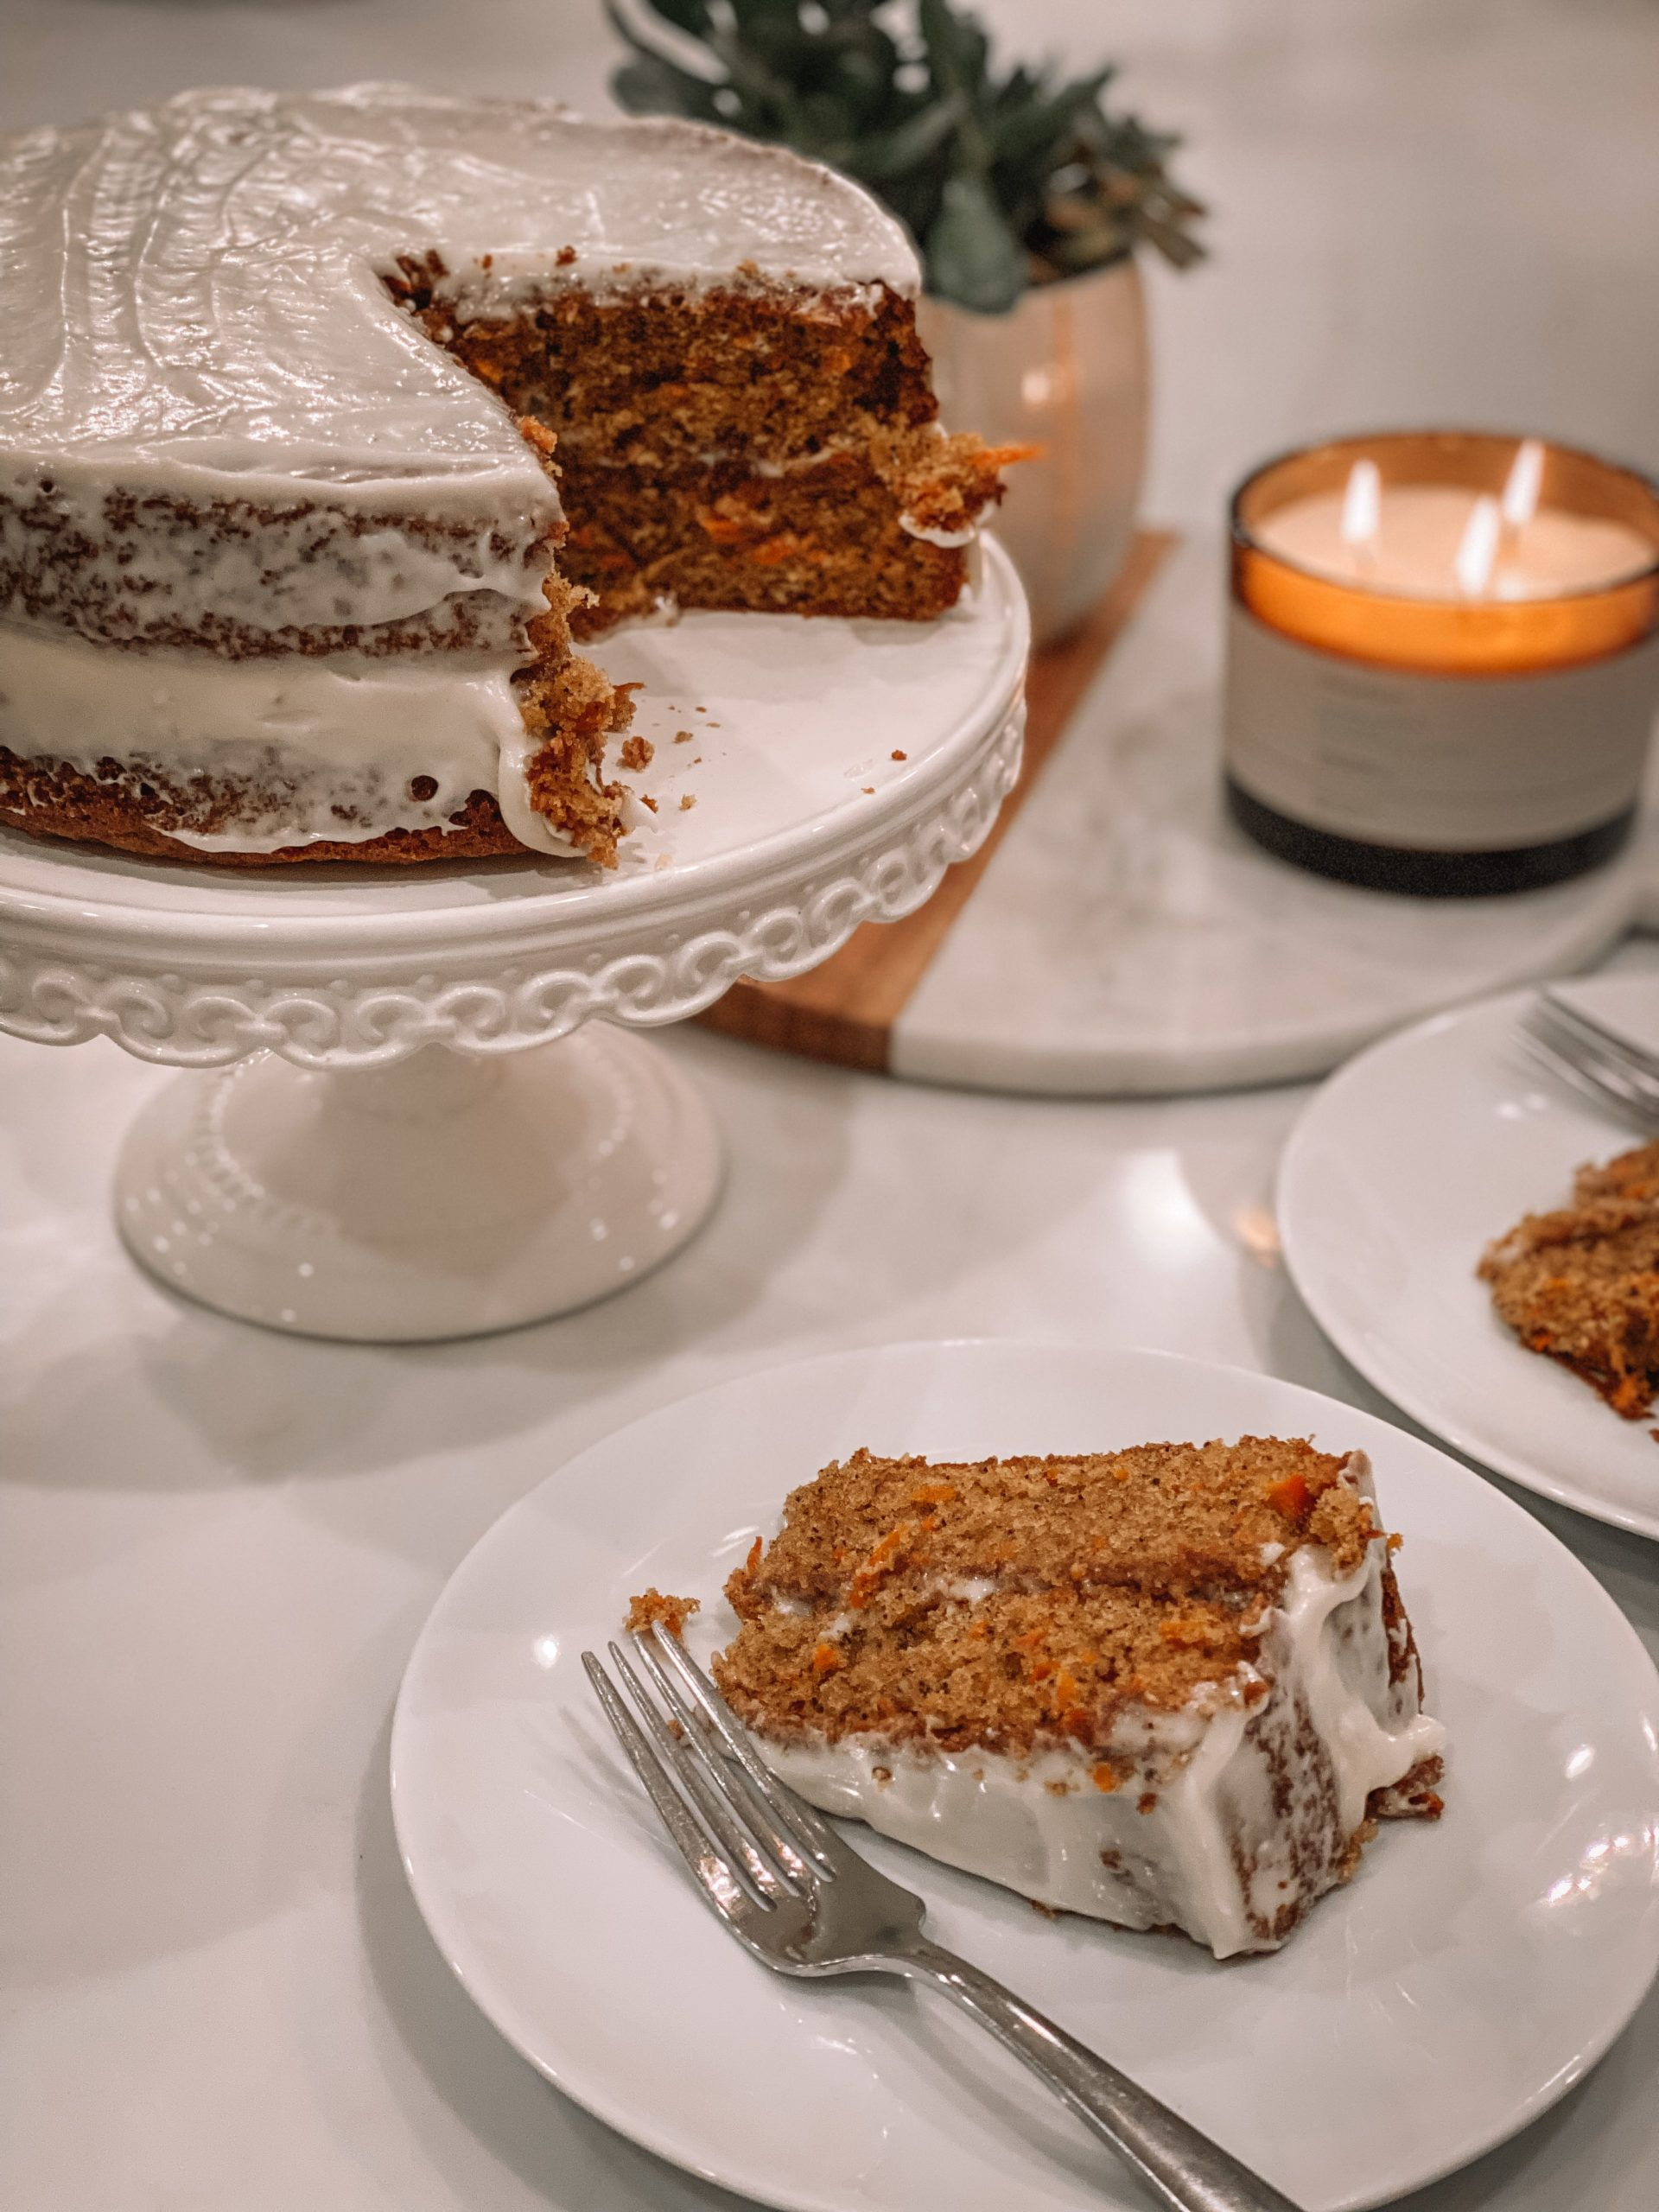 Delicious carrot cake with cream cheese frosting recipe